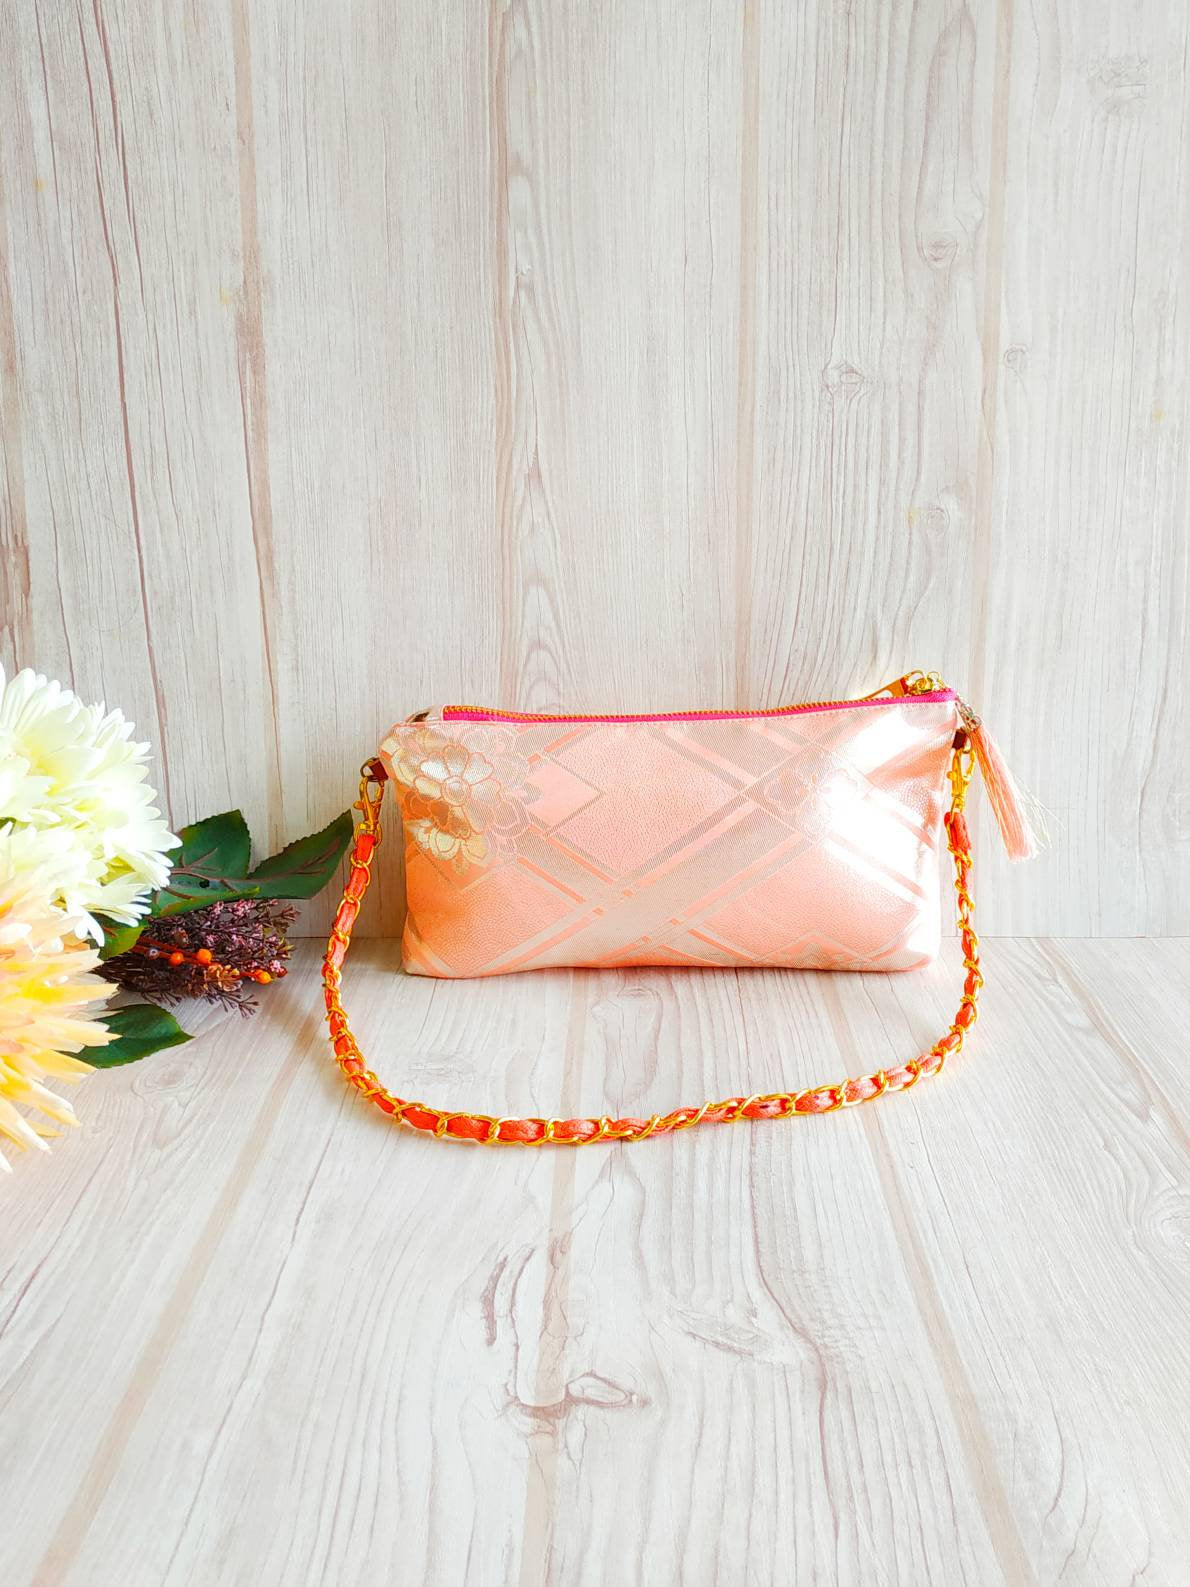 Shoulder clutch, Chain clutch, Japanese Kimono bag, Evening bag, Chain strap, Shoulder Bag, 2 way bag, Wedding clutch, Pink clutch bag